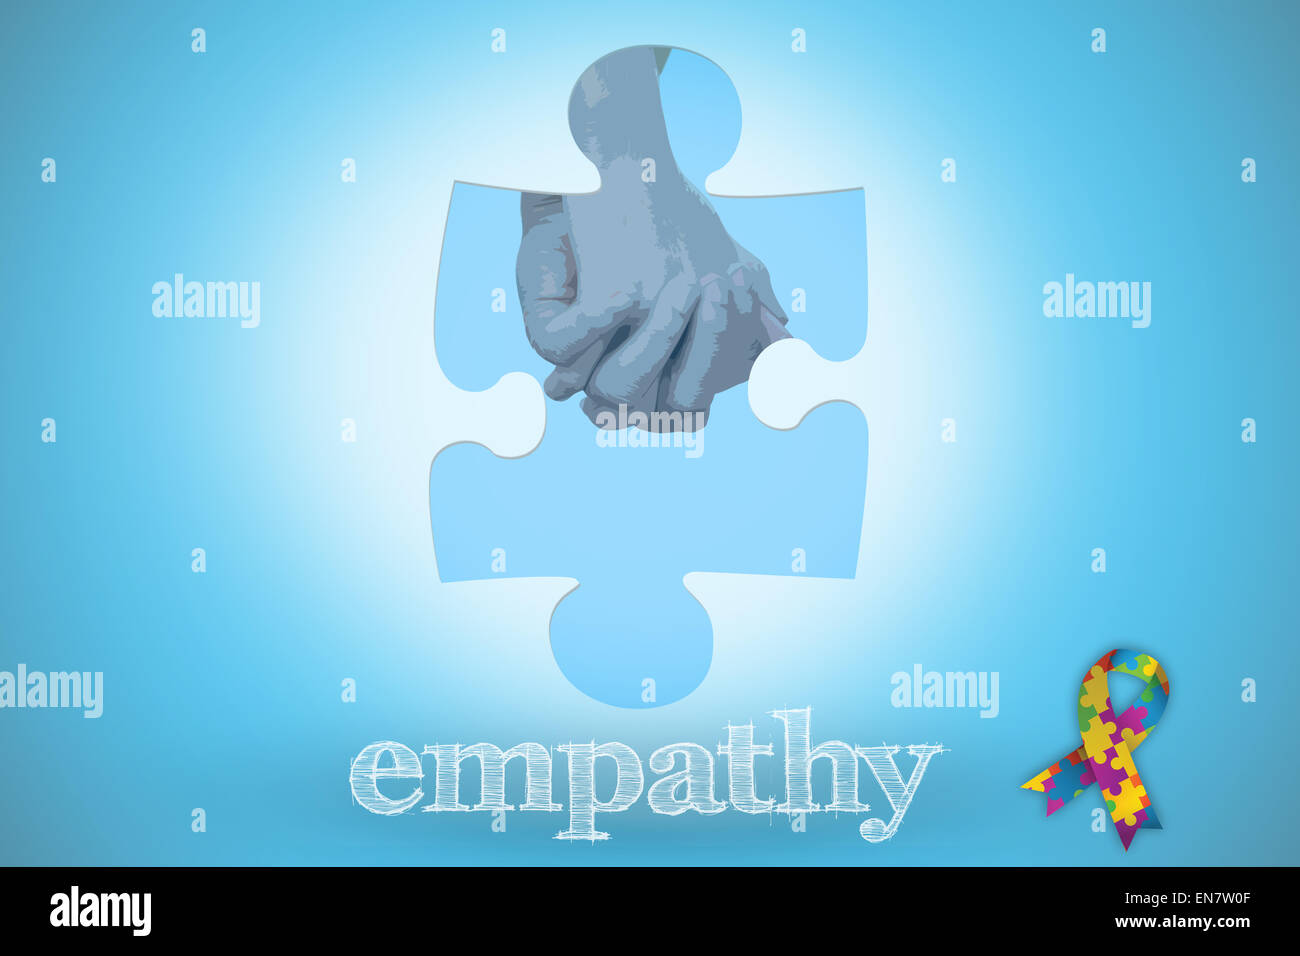 Empathy against blue background with vignette - Stock Image